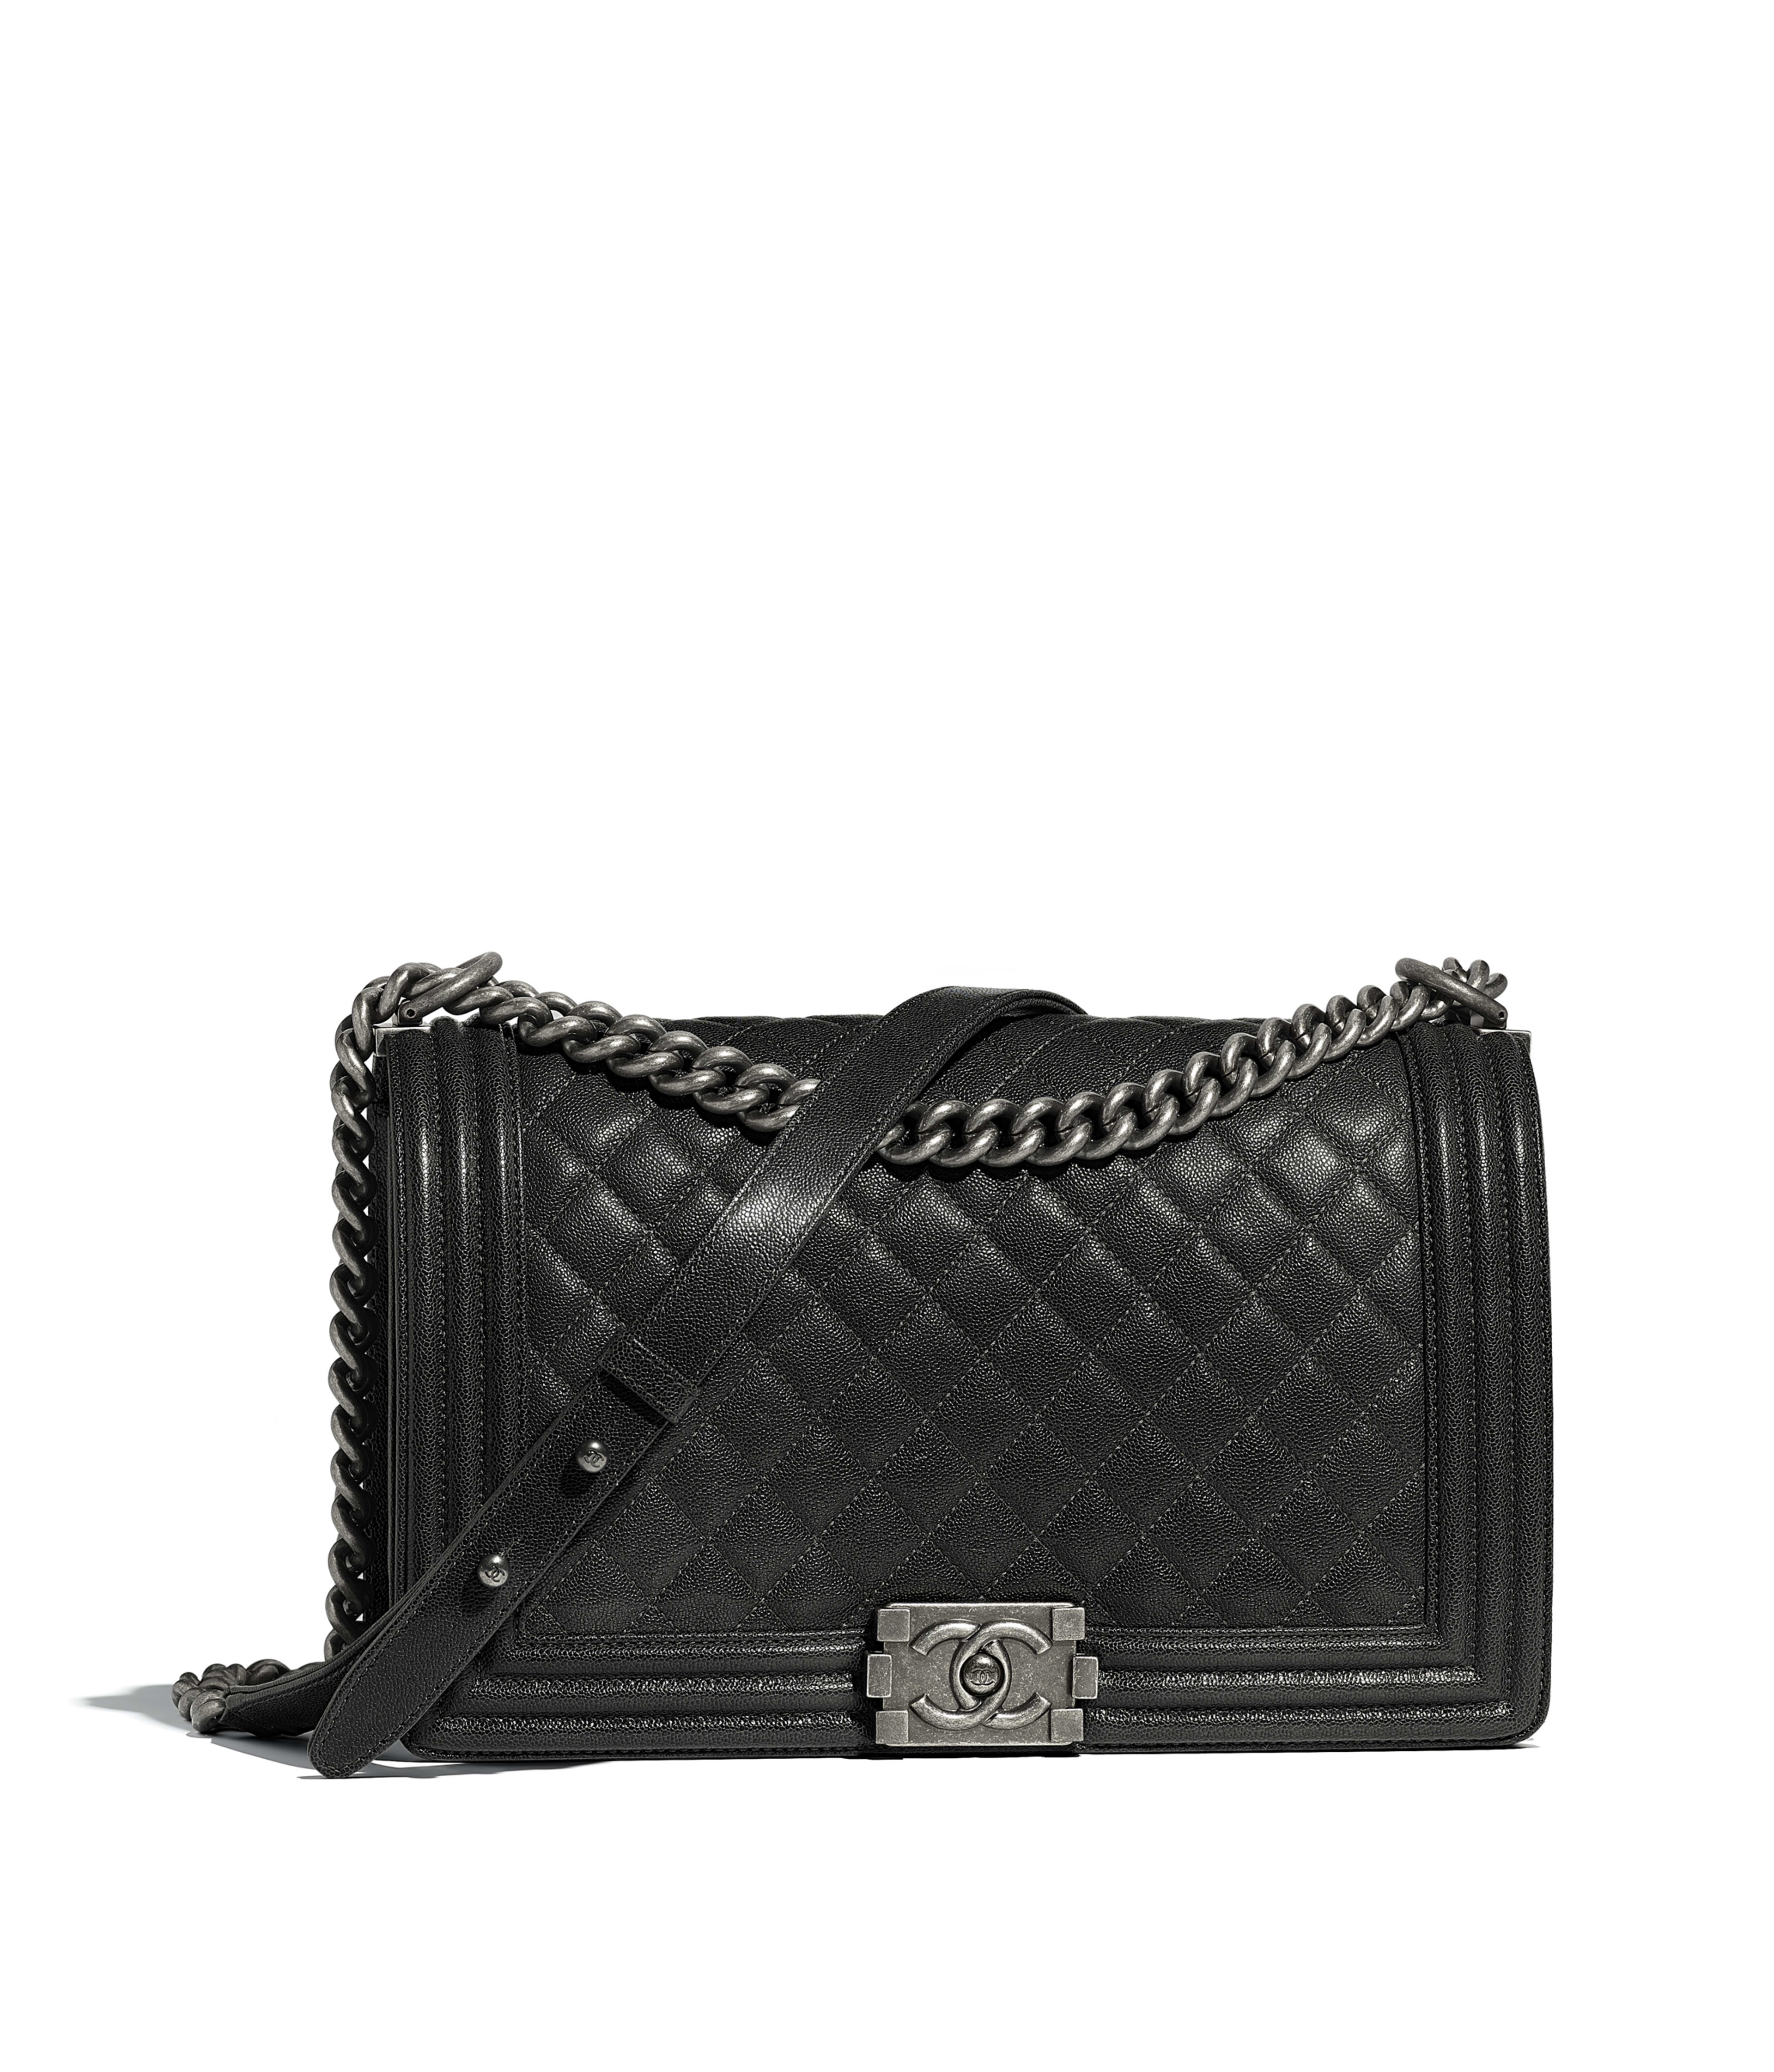 Large Boy Chanel Handbag Grained Calfskin Ruthenium Finish Metal Charcoal Ref A92193y333765b459